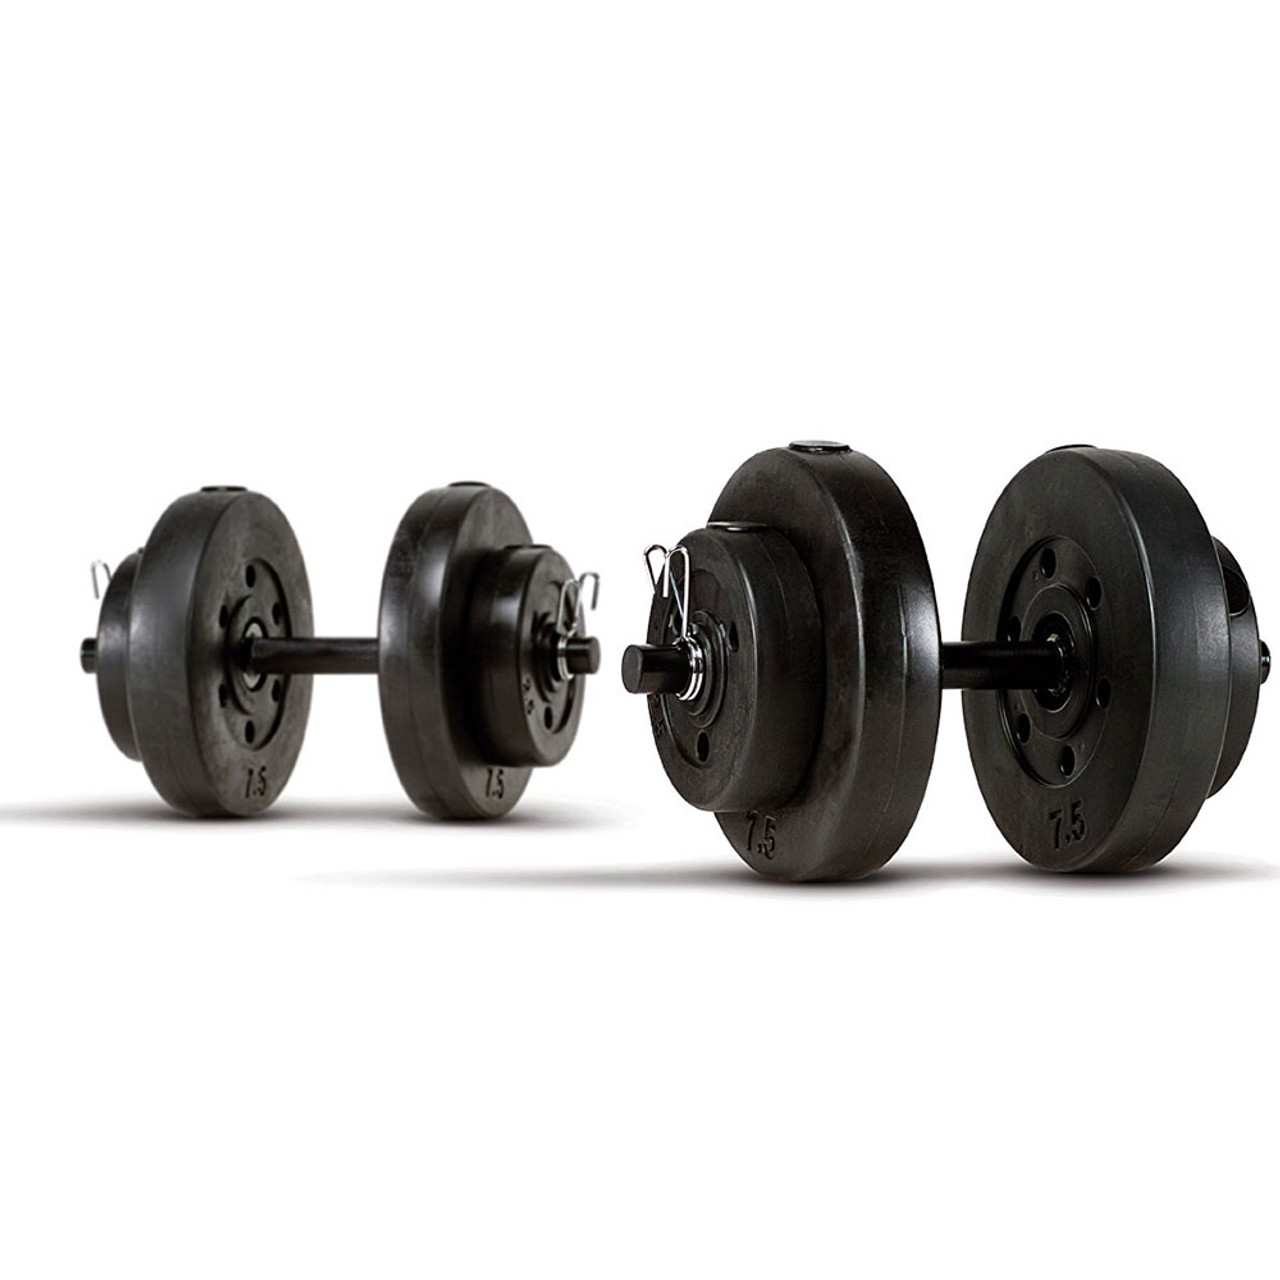 40 Lb Vinyl Dumbbell Set Marcy Vb 40 Heavy Duty Vinyl